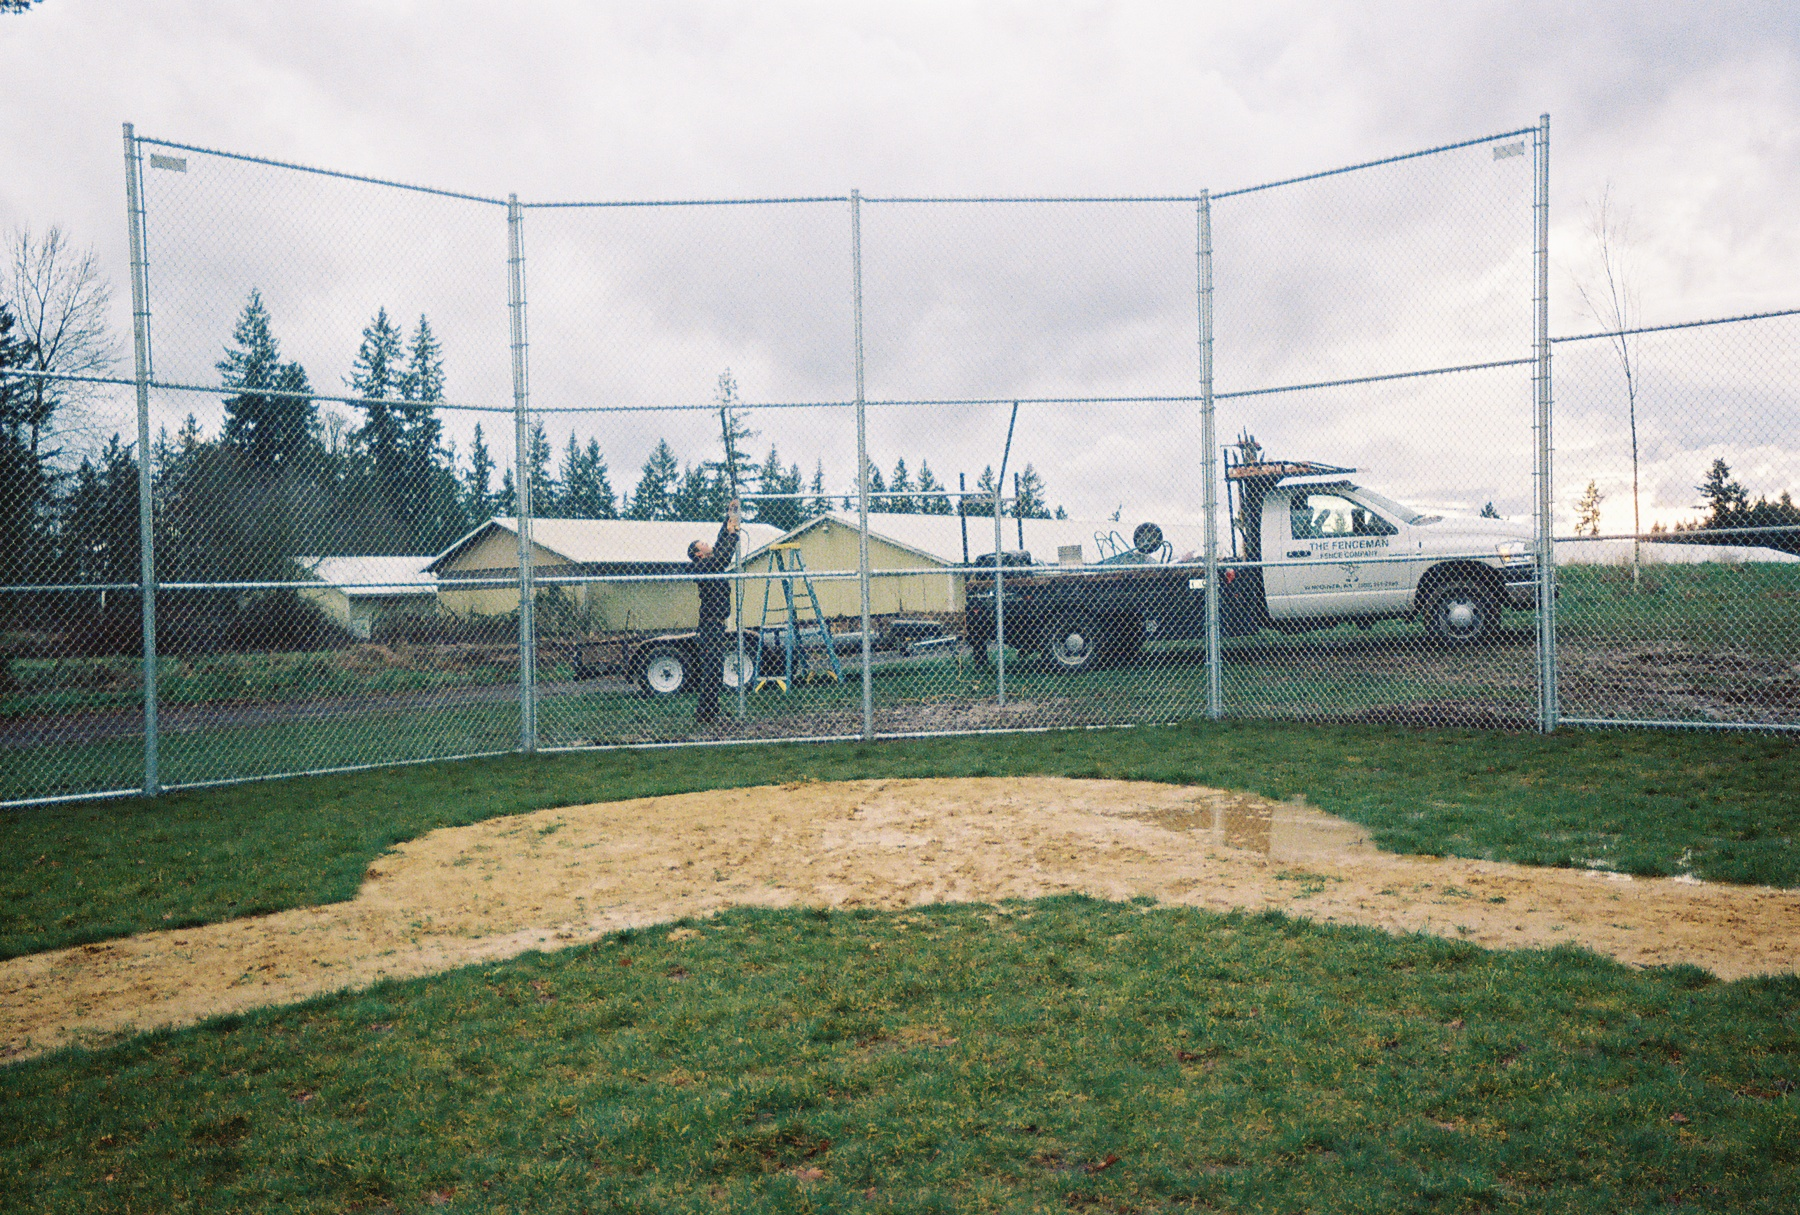 Preparing for the first pitch. Contact Vancouver Washington's Best Fence Builders. The Fenceman Fence Company installs wood, vinyl, chain link and ornamental iron fences. We also offer materials for the do it yourselfer.